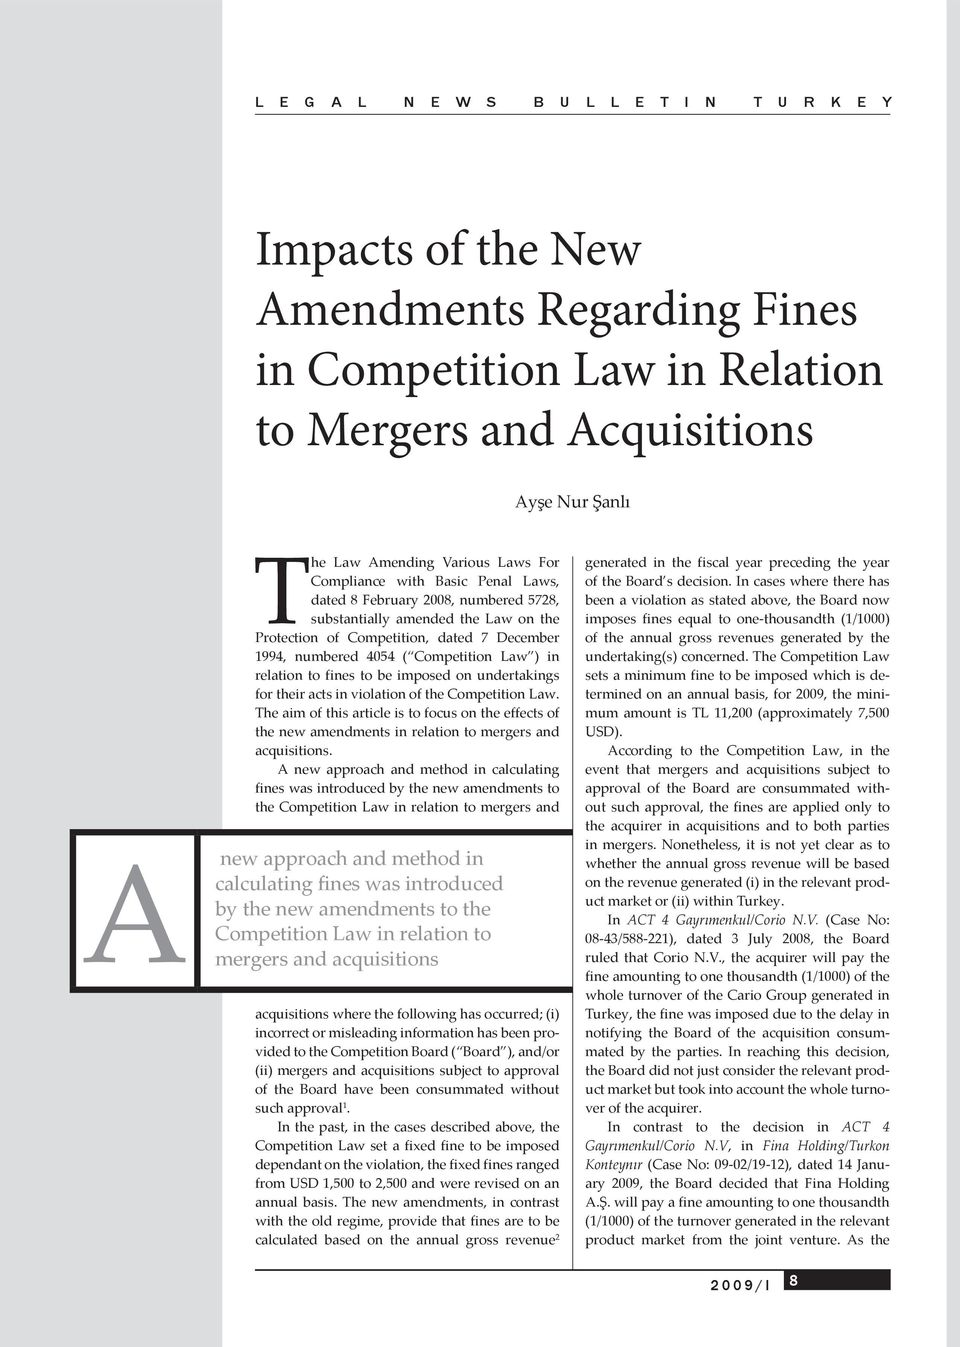 undertakings for their acts in violation of the Competition Law. The aim of this article is to focus on the effects of the new amendments in relation to mergers and acquisitions.